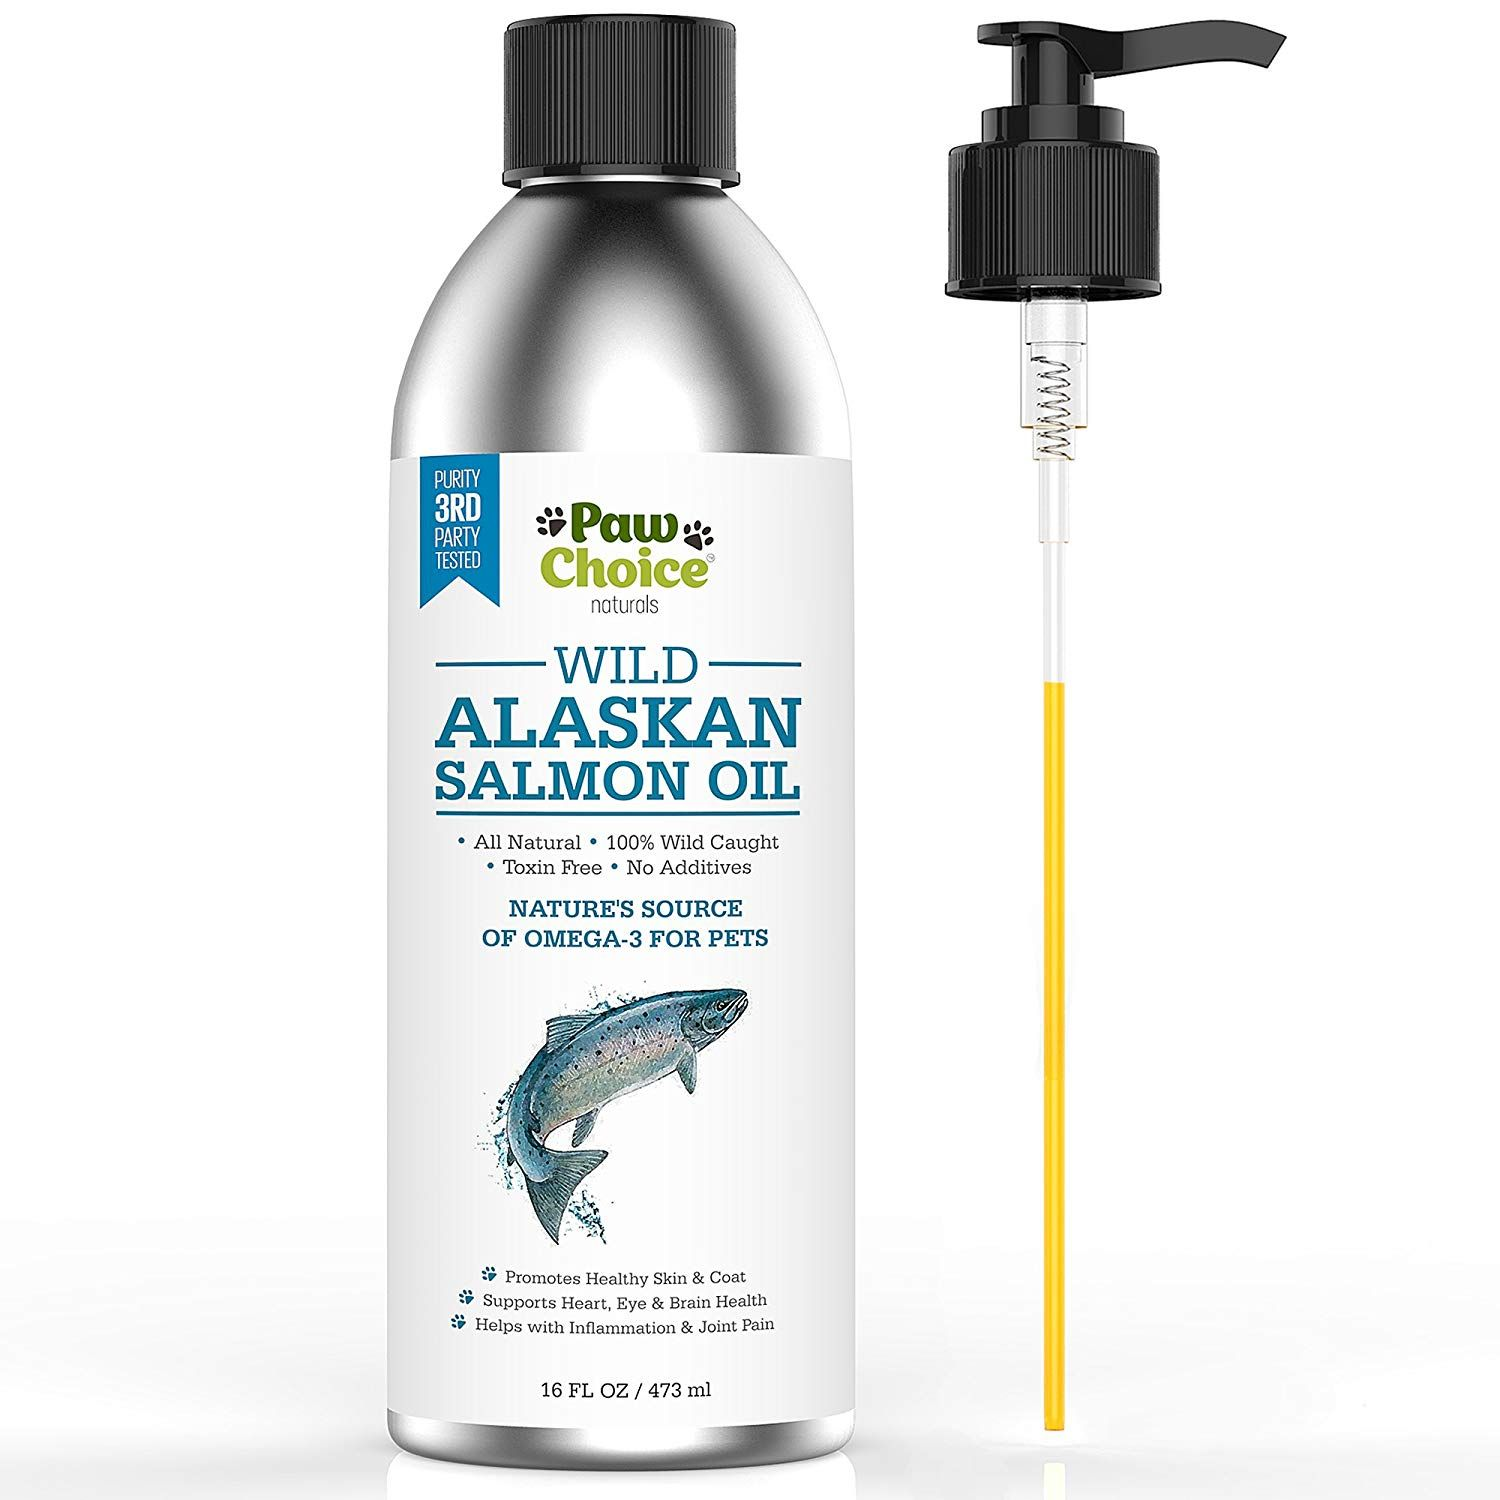 Wild Alaskan Salmon Oil for Dogs and Cats Best Omega 3